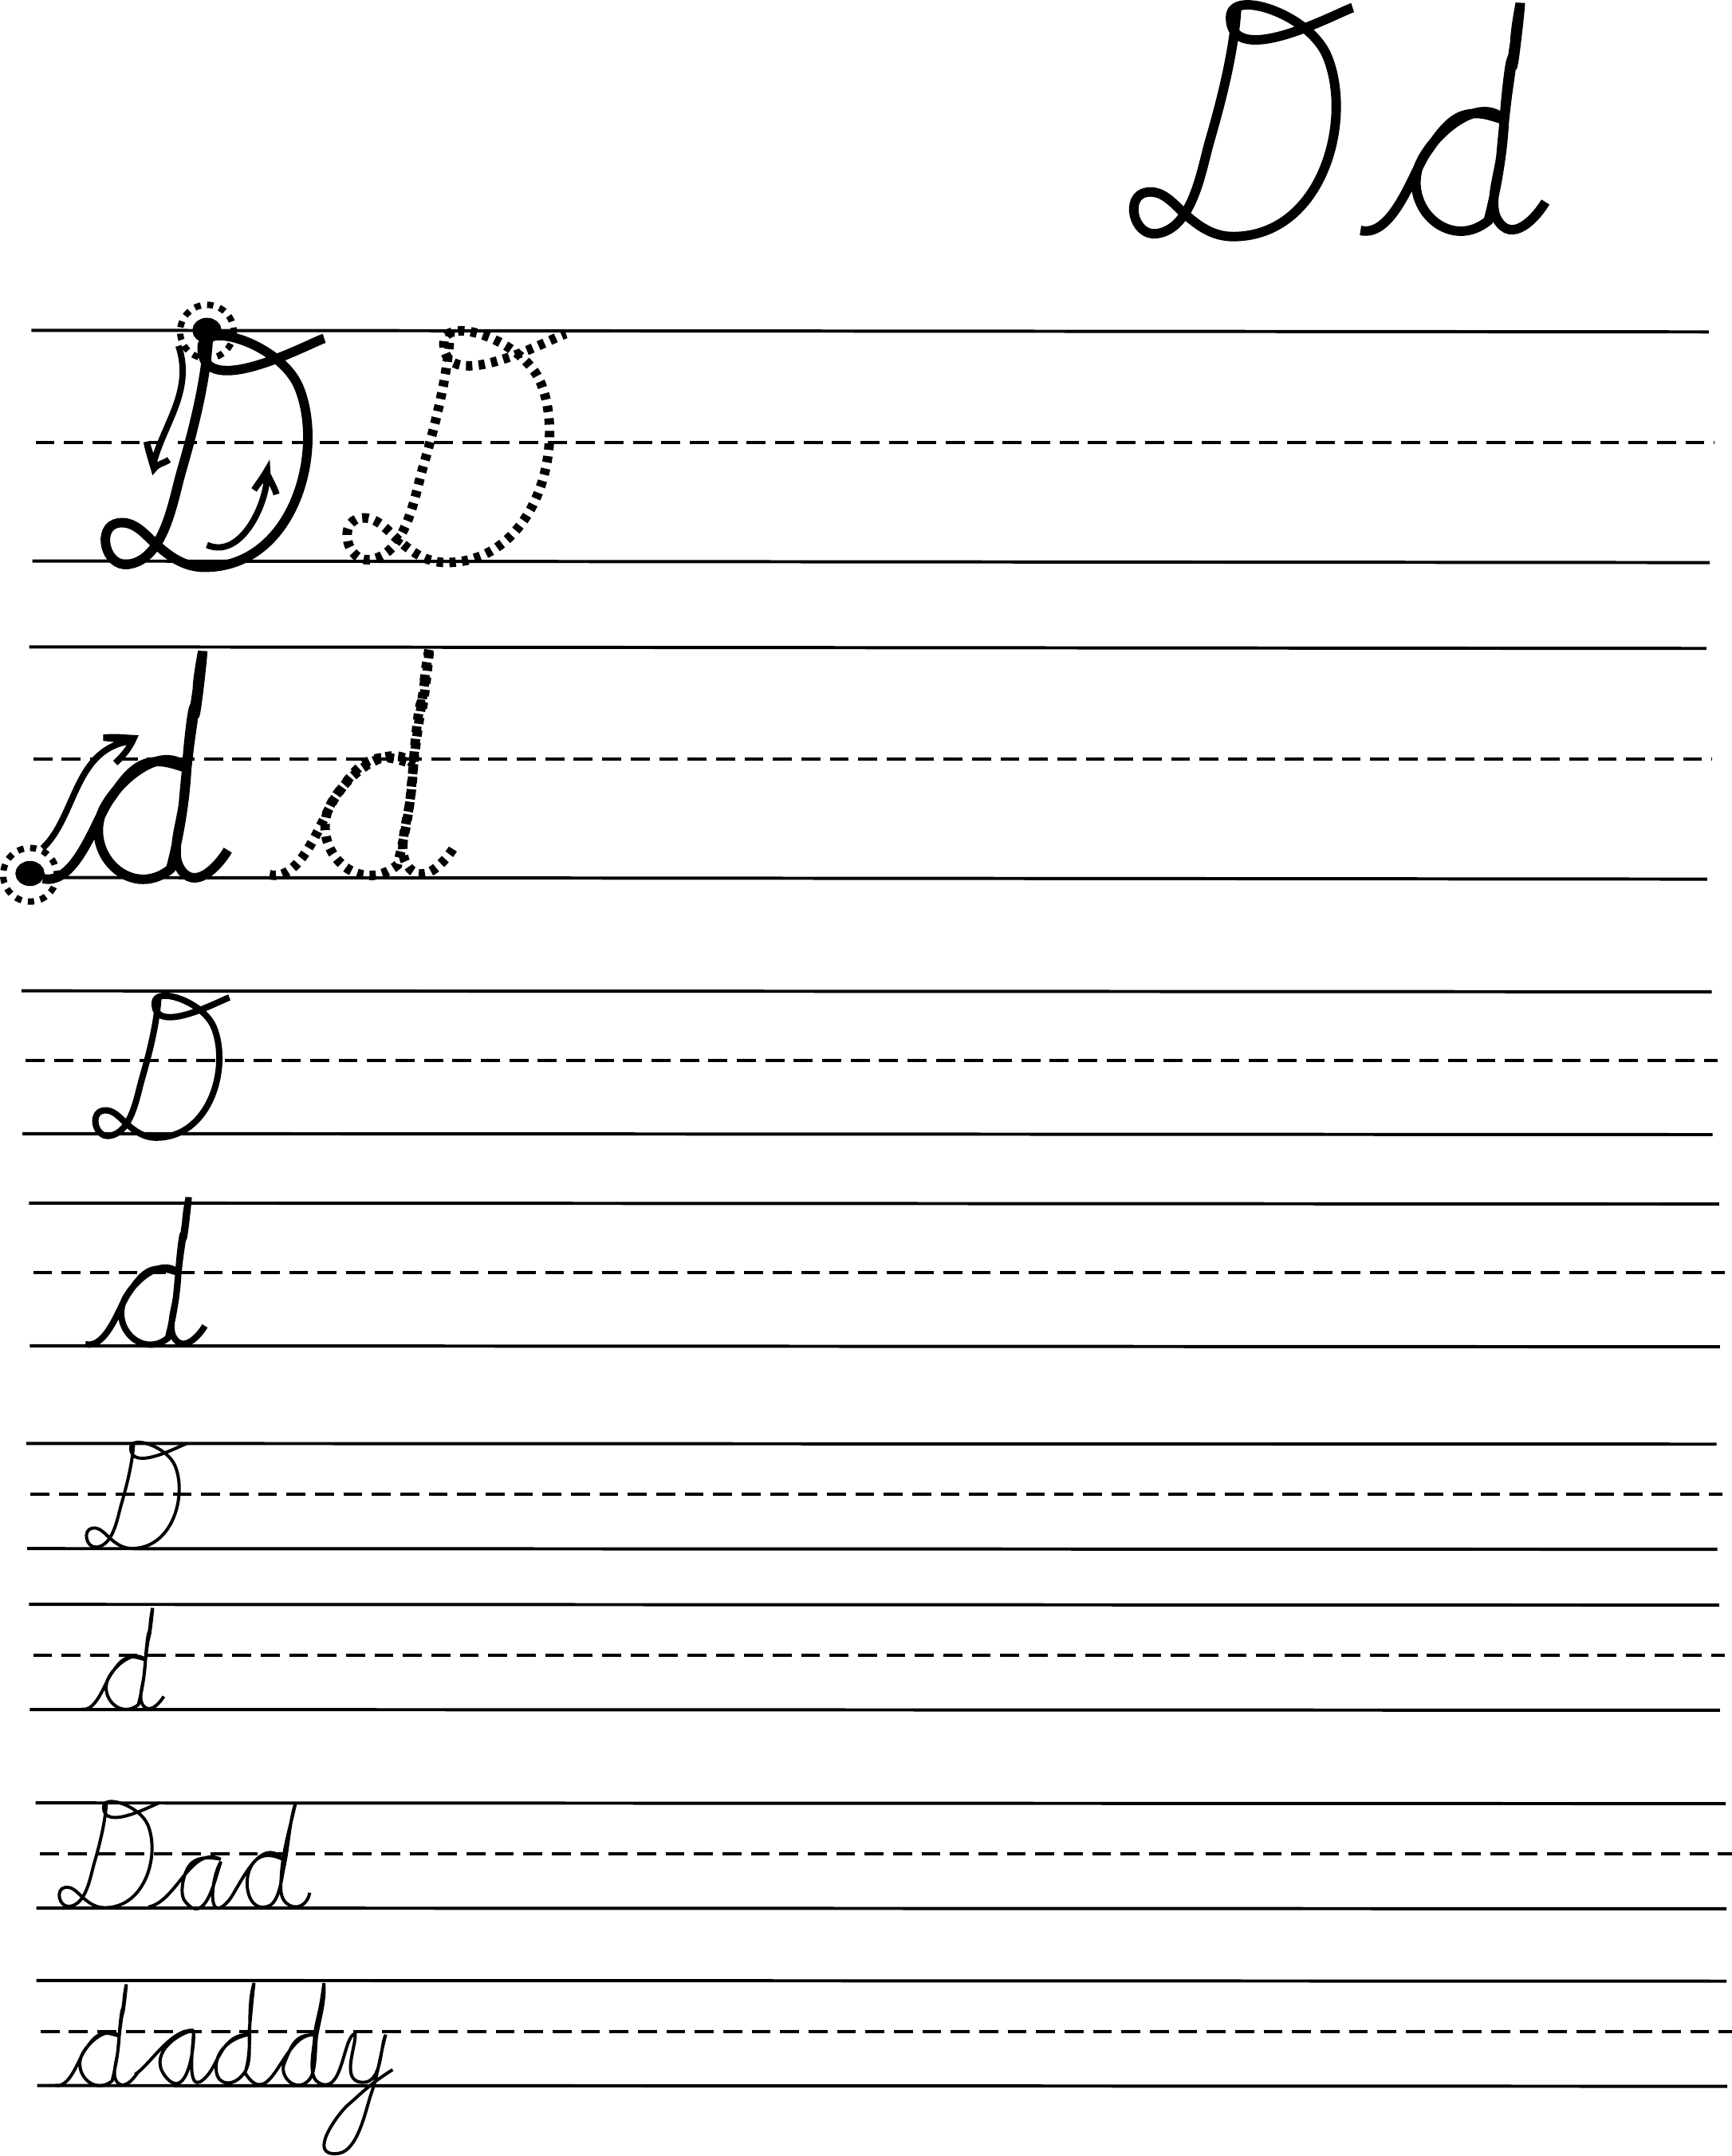 Cursive Handwriting Practice Free Download